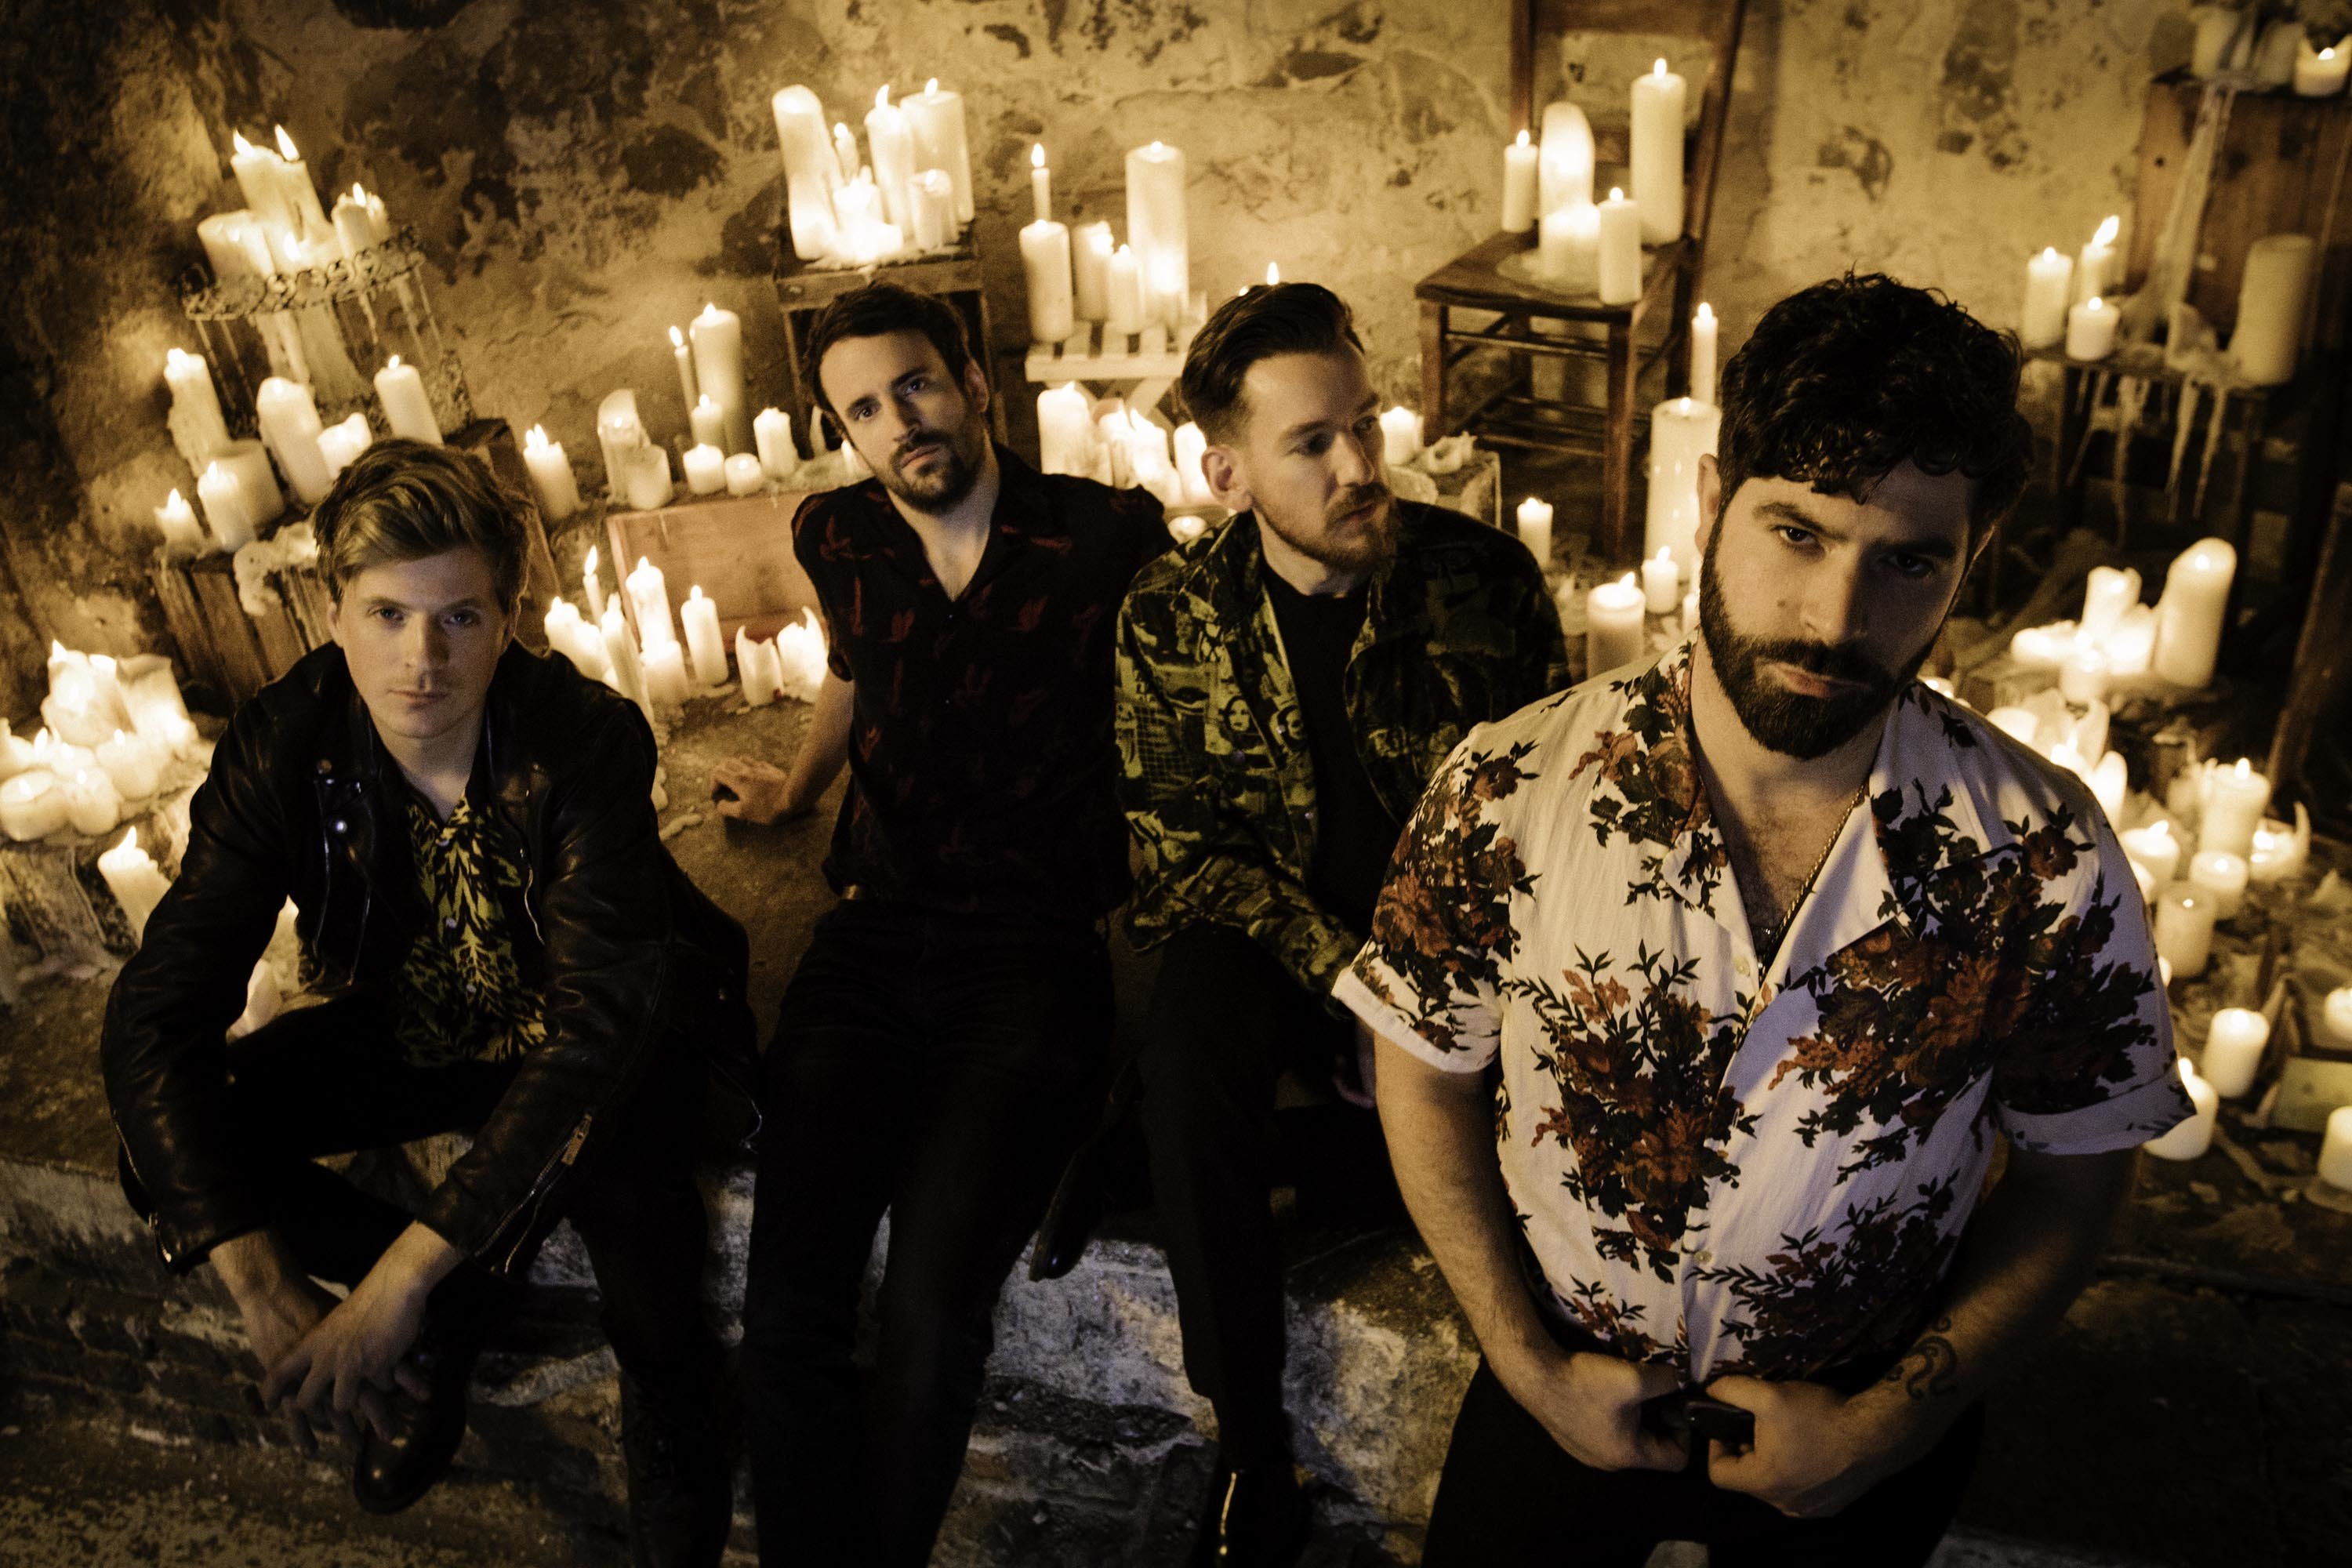 The Runner: Ponle play al nuevo single de Foals